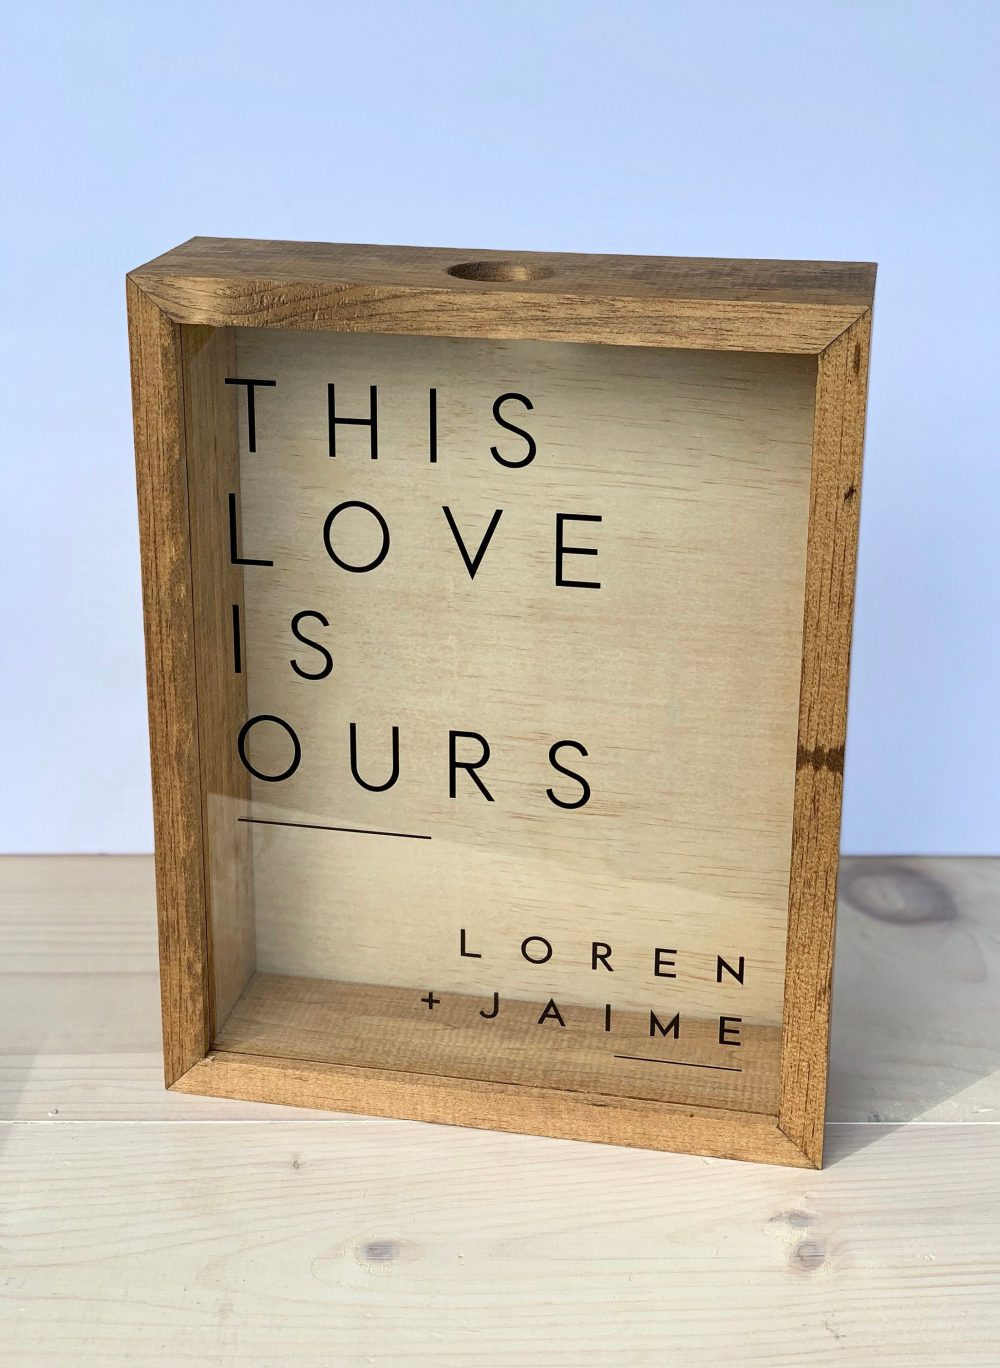 Personalized Wine Cork Keeper | Wood Box Large Size Modern Shadow Display For Corks - This Love Is Ours